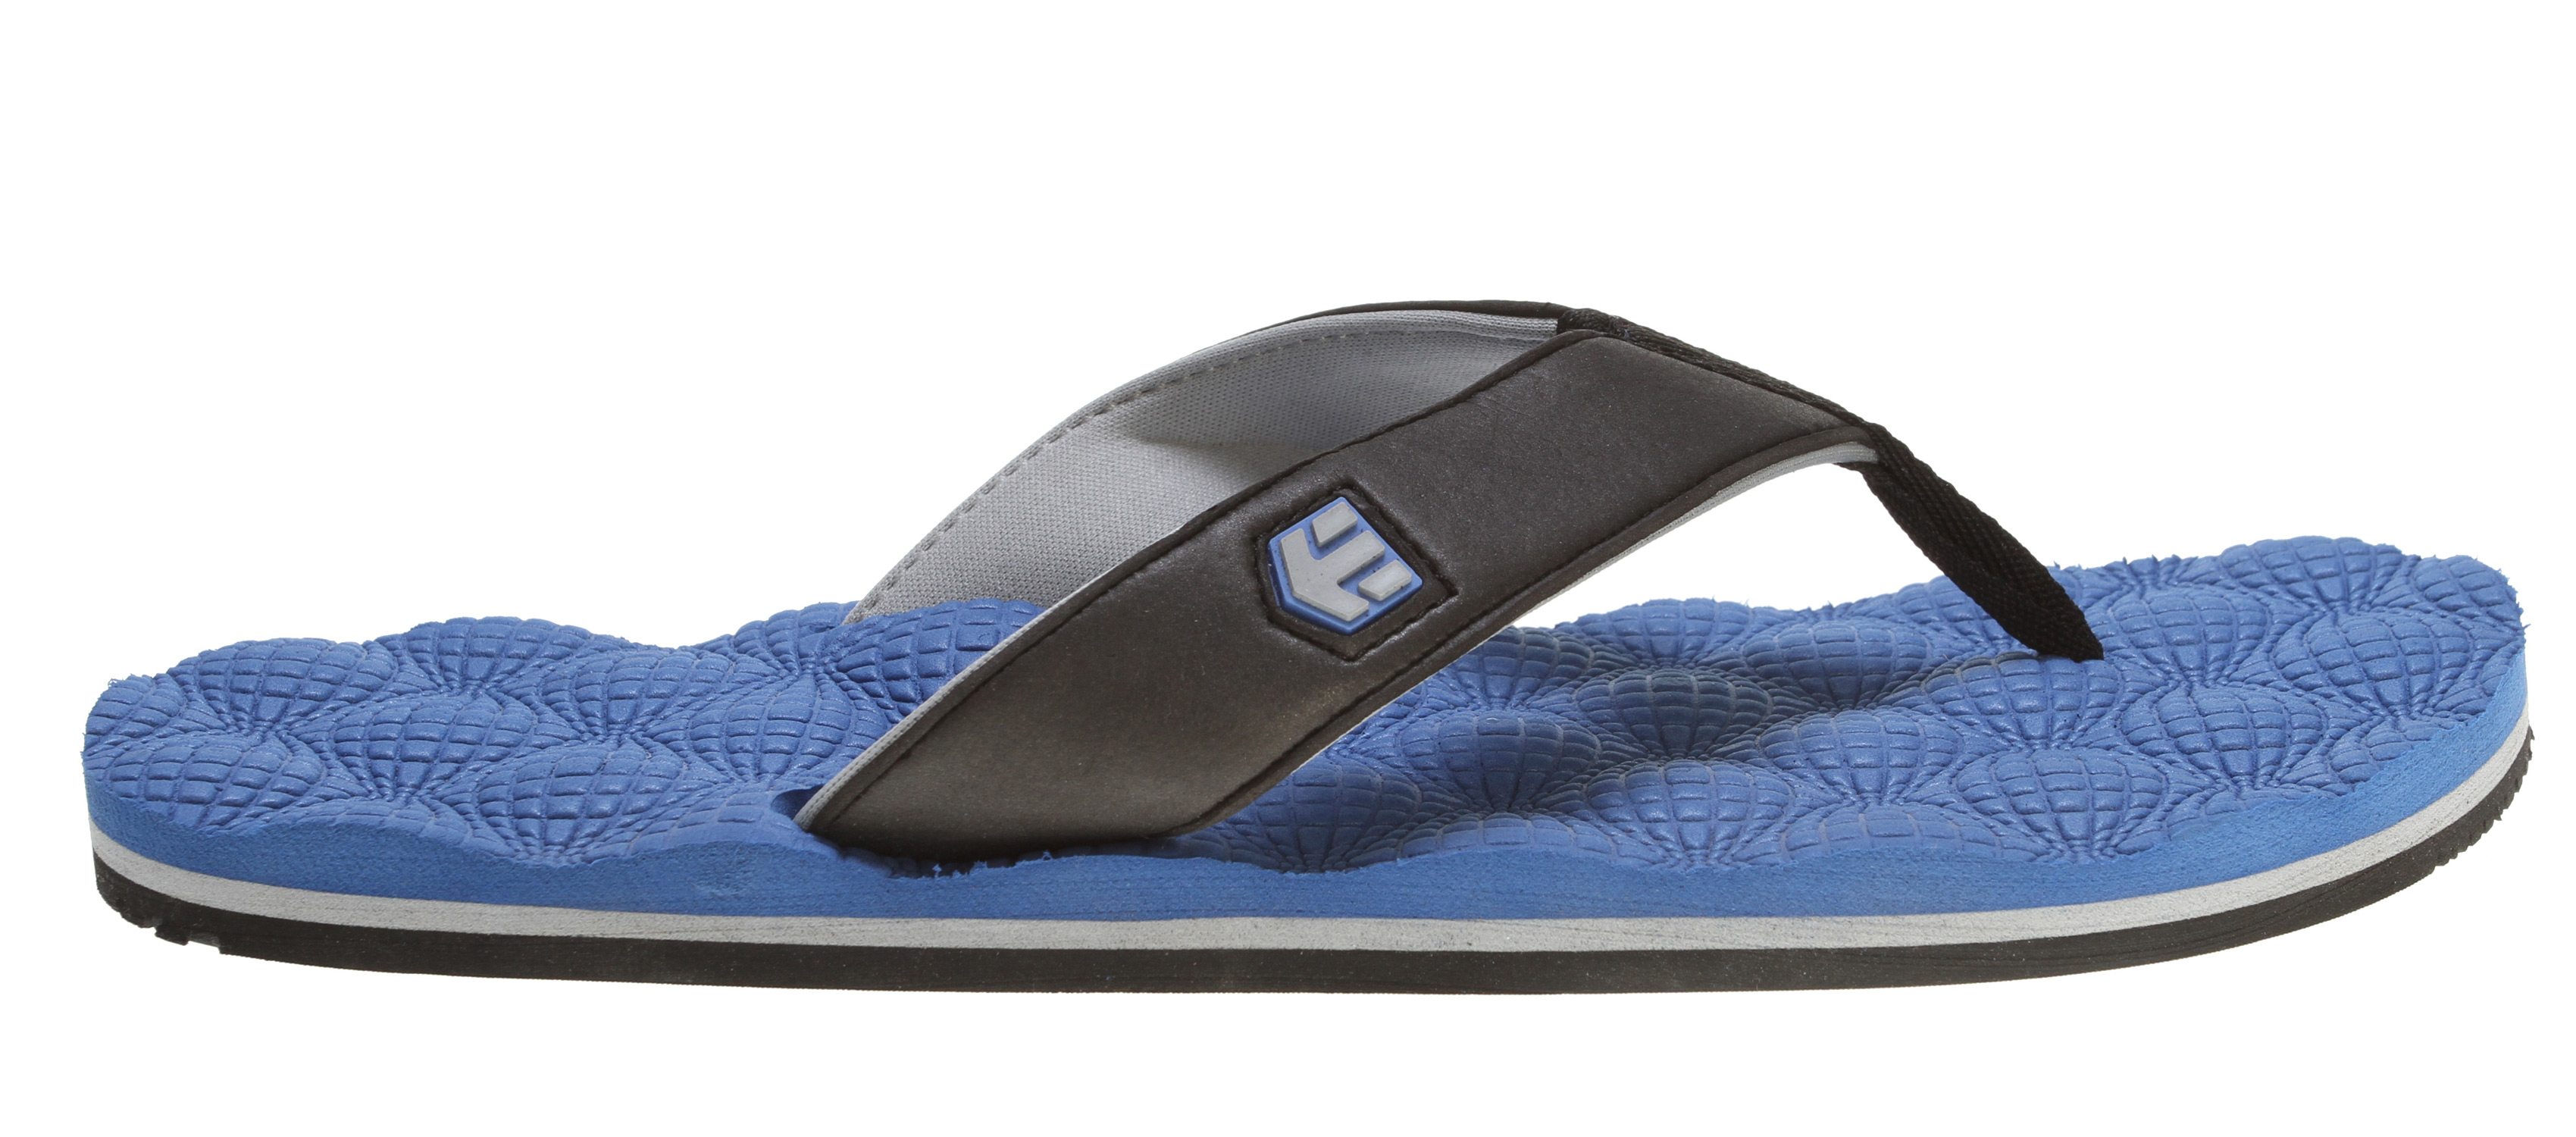 Skateboard Key Features of the Etnies Foam Ball Sandals: Super soft molded EVA footbed EVA straps lined with eco-friendly neoprene TPR logo detail Durable rubber outsole - $18.95